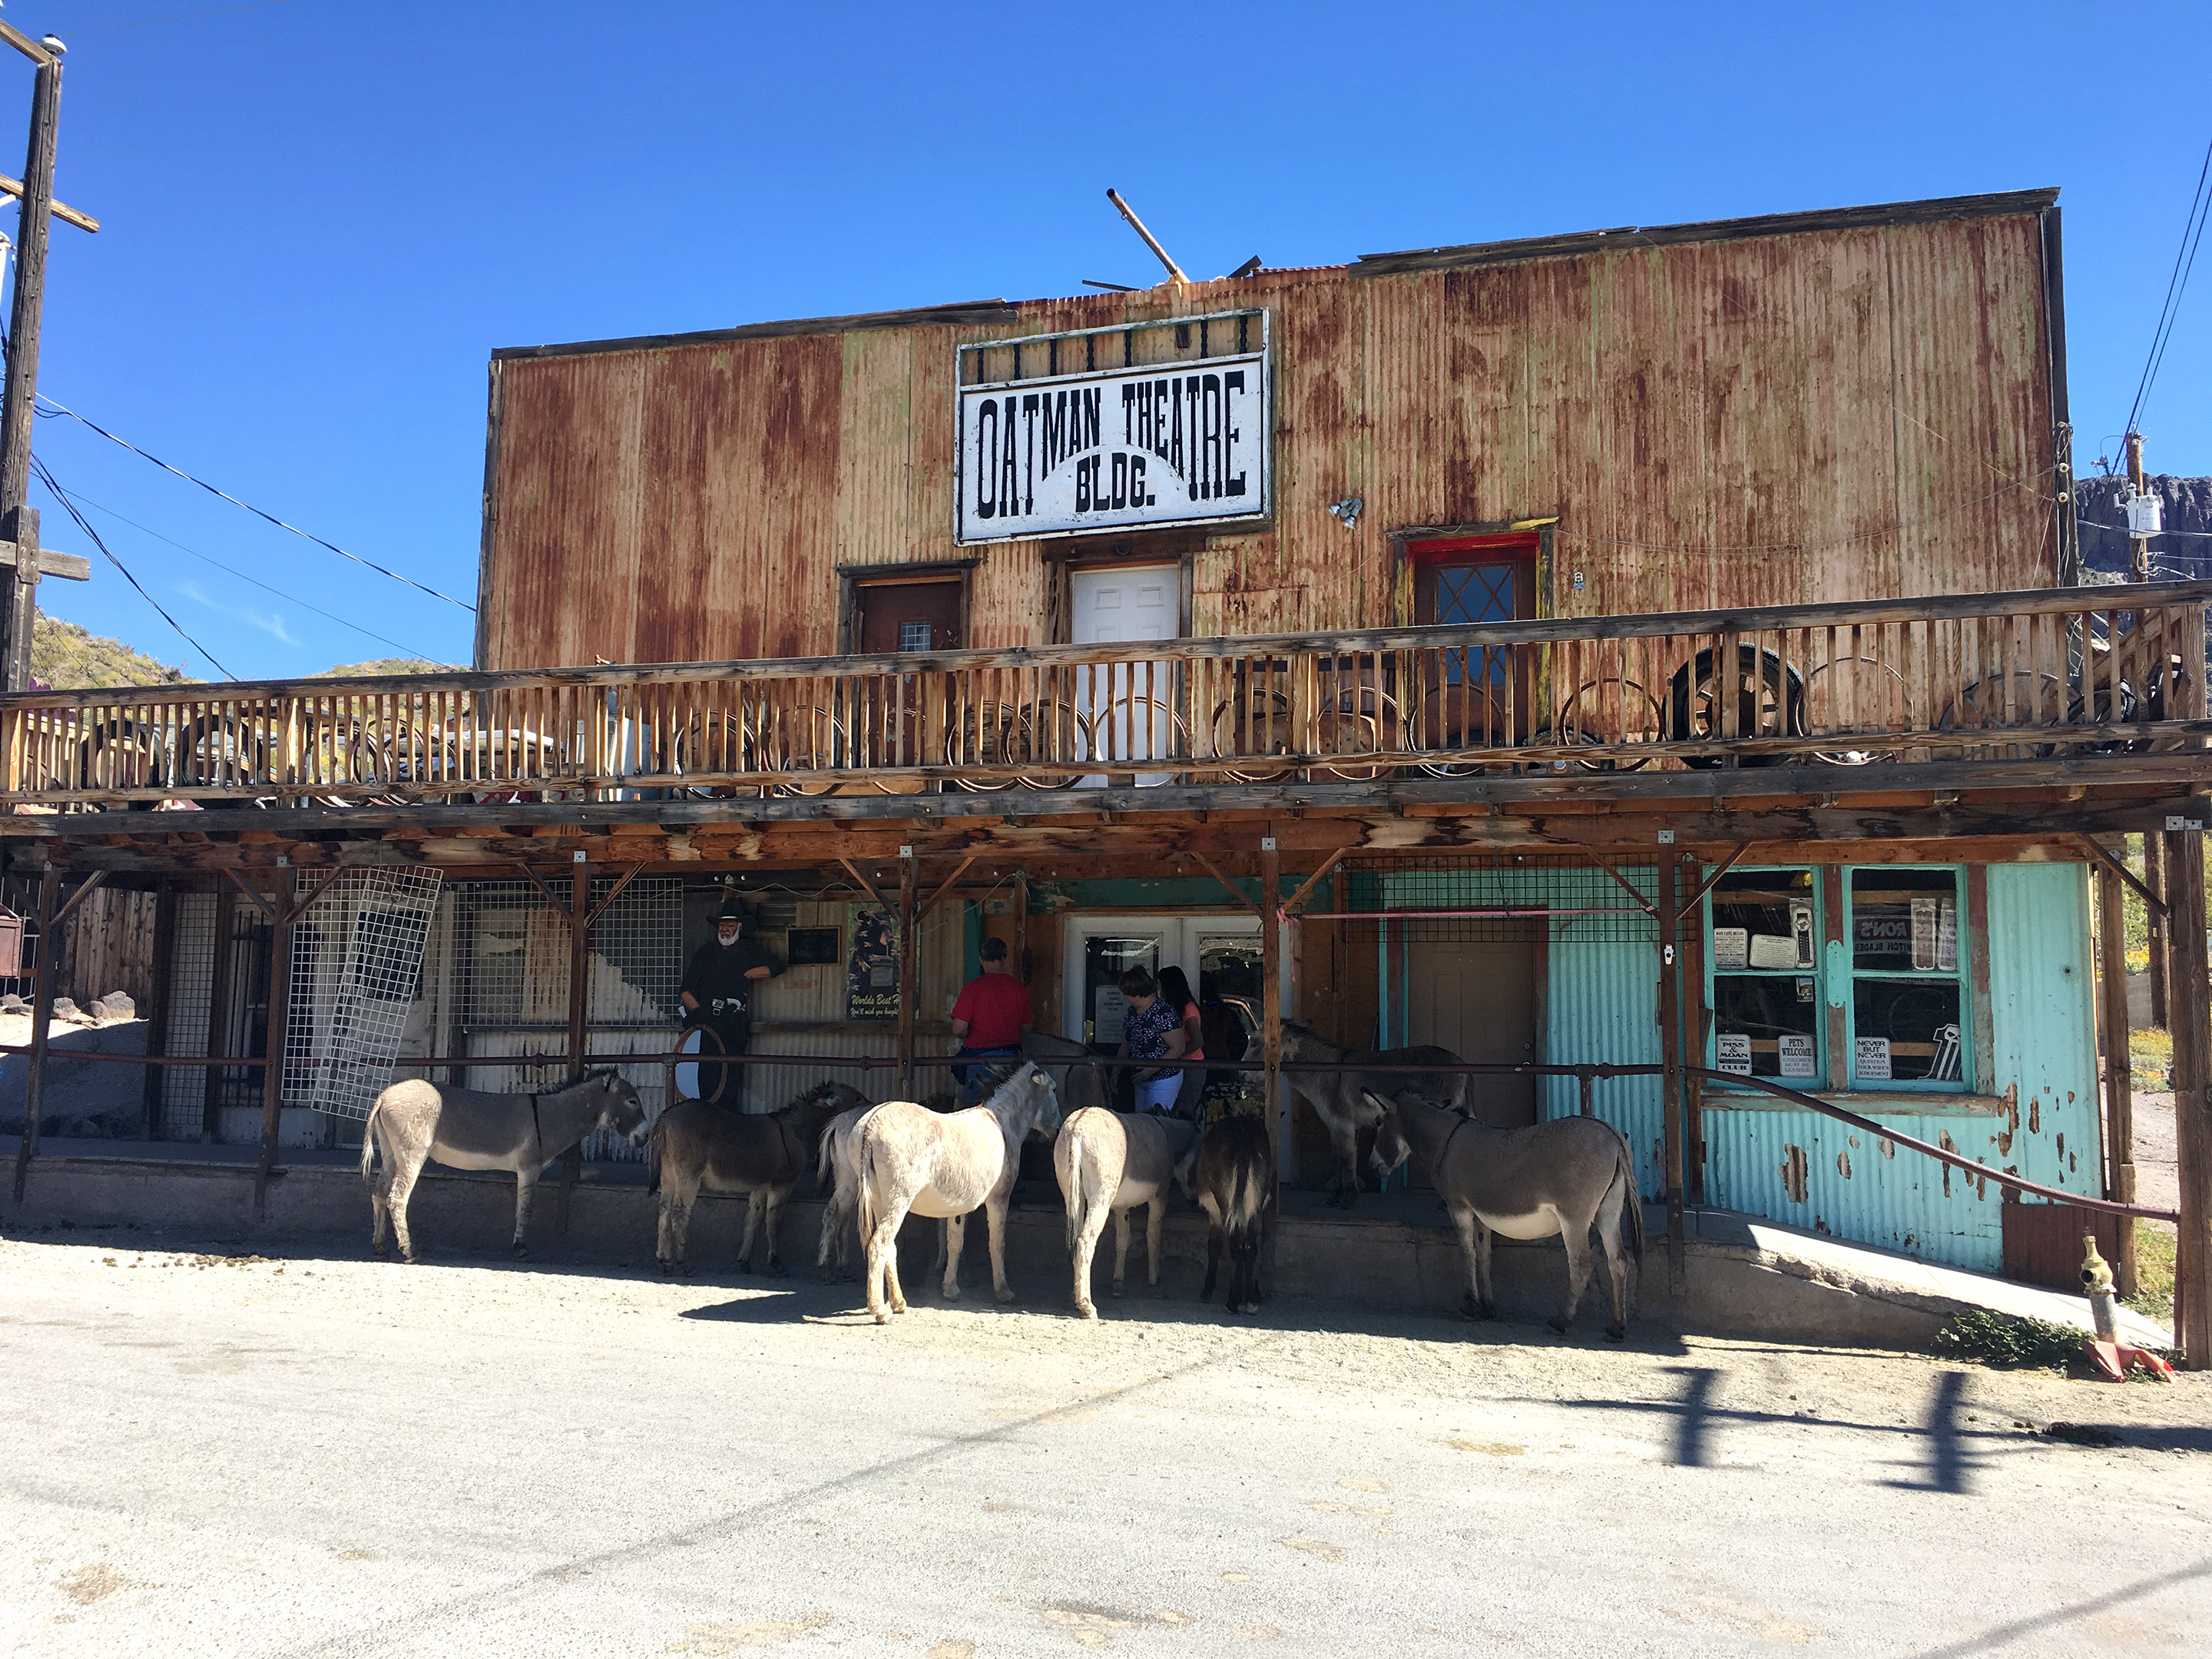 Oatman Theatre Building